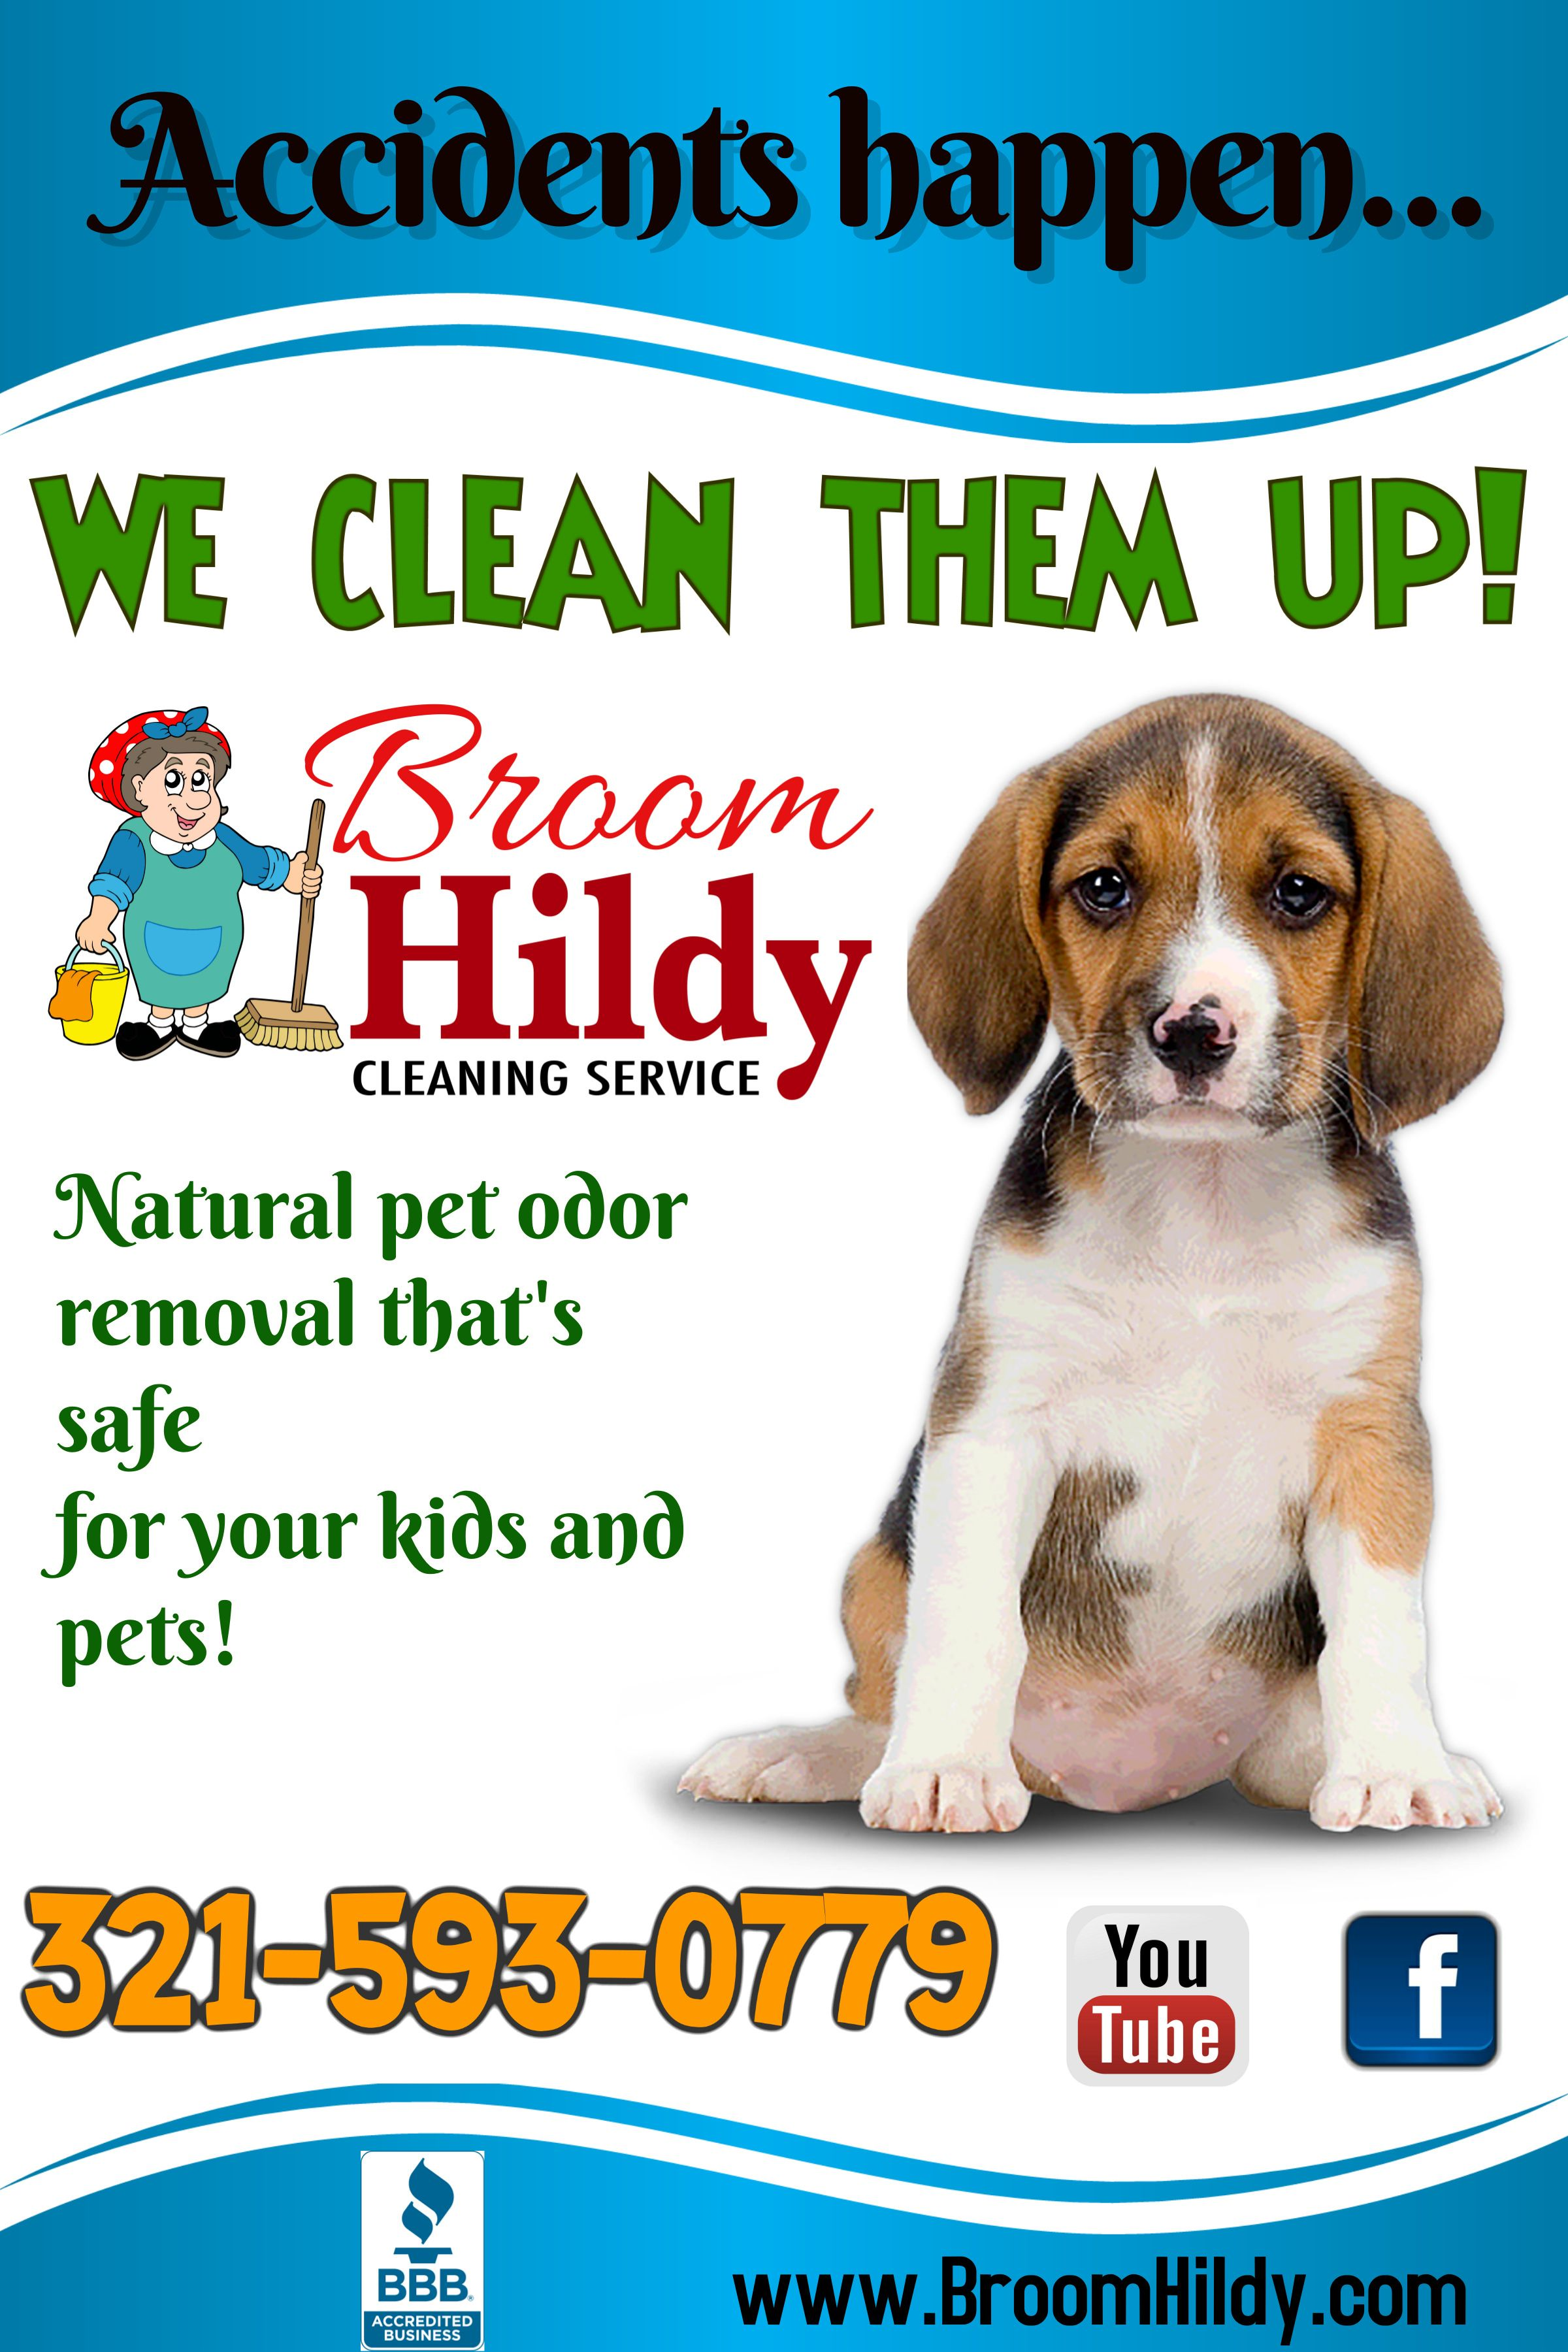 Cleaning Service Carpet Cleaning Window Cleaning Tile Grout Cleaning Home And Office Cleaning 321 593 0779 Own Yo Cleaning Service Cleaning Clean Office